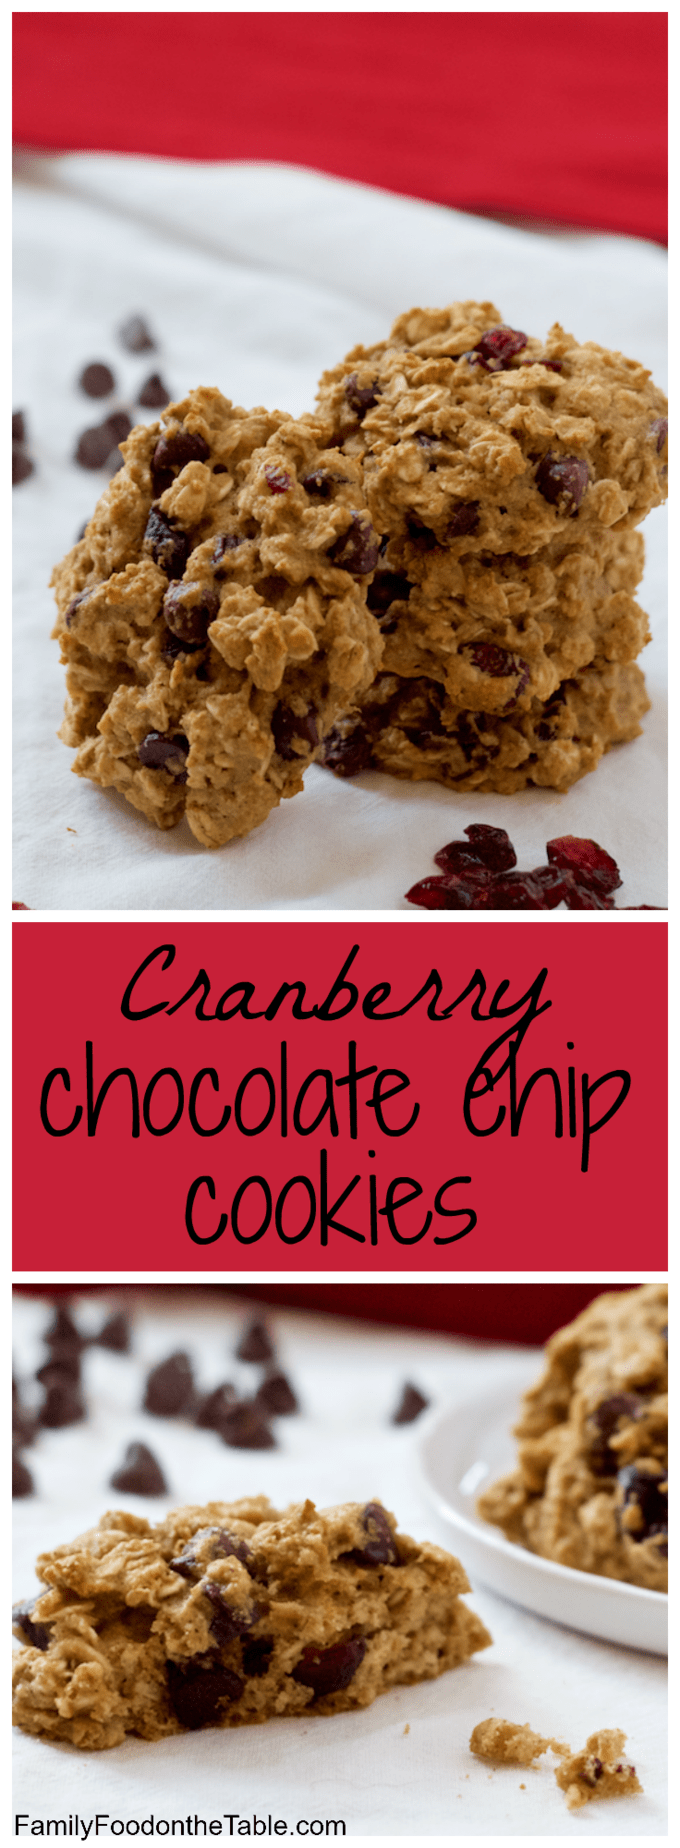 Cranberry chocolate chip cookies - easy, whole grain and naturally sweetened! | FamilyFoodontheTable.com